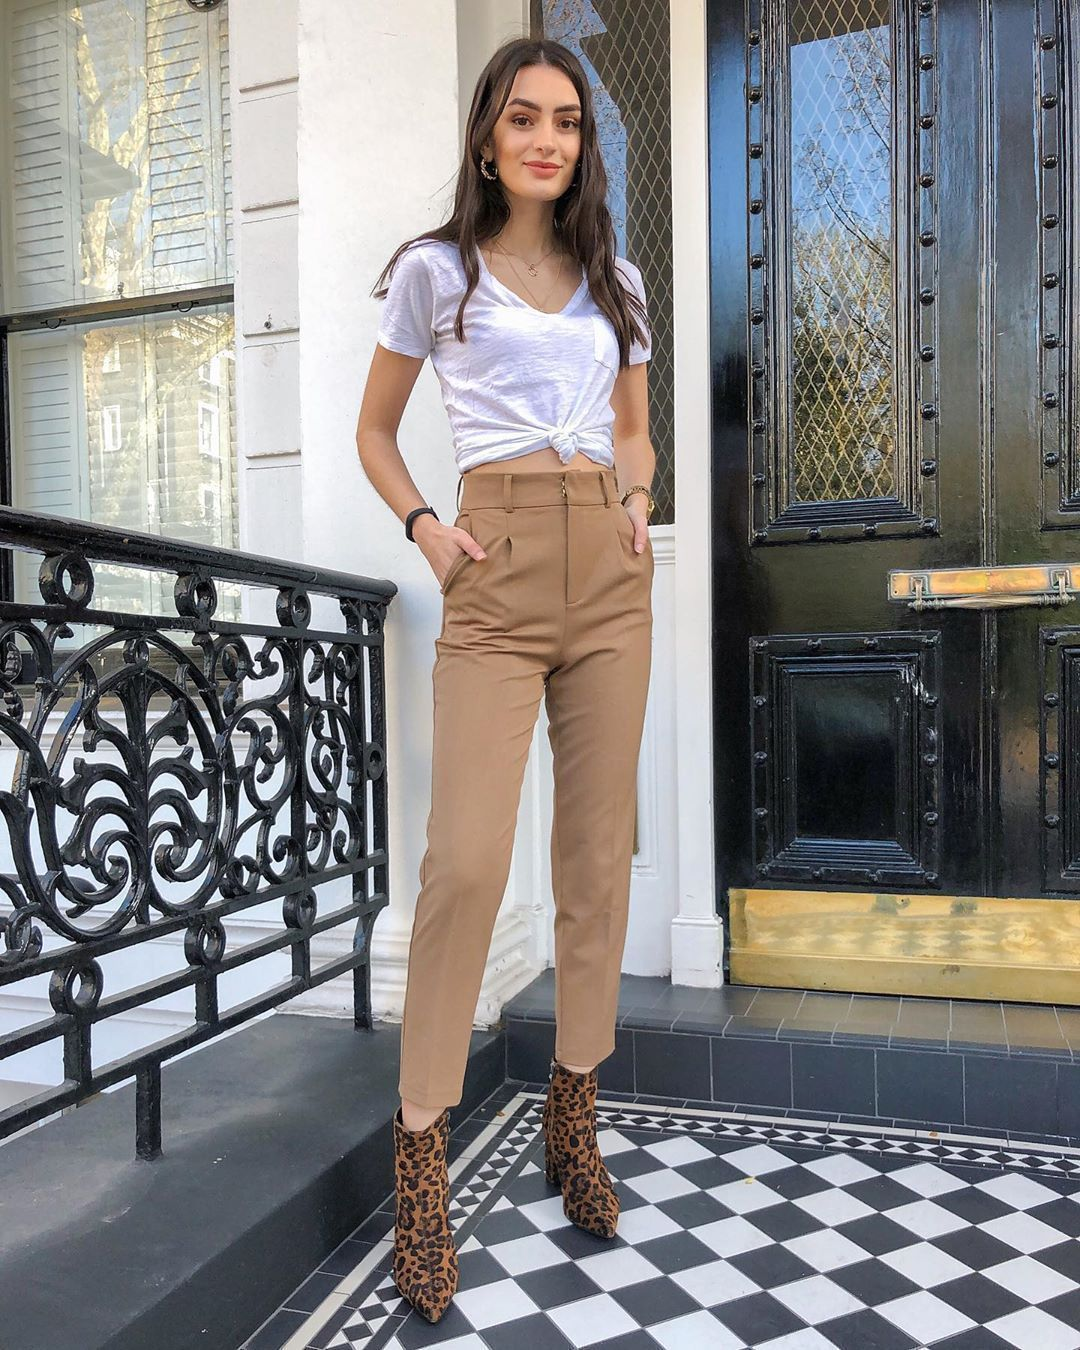 Get the pants for $20 at nastygal.com – Wheretoget